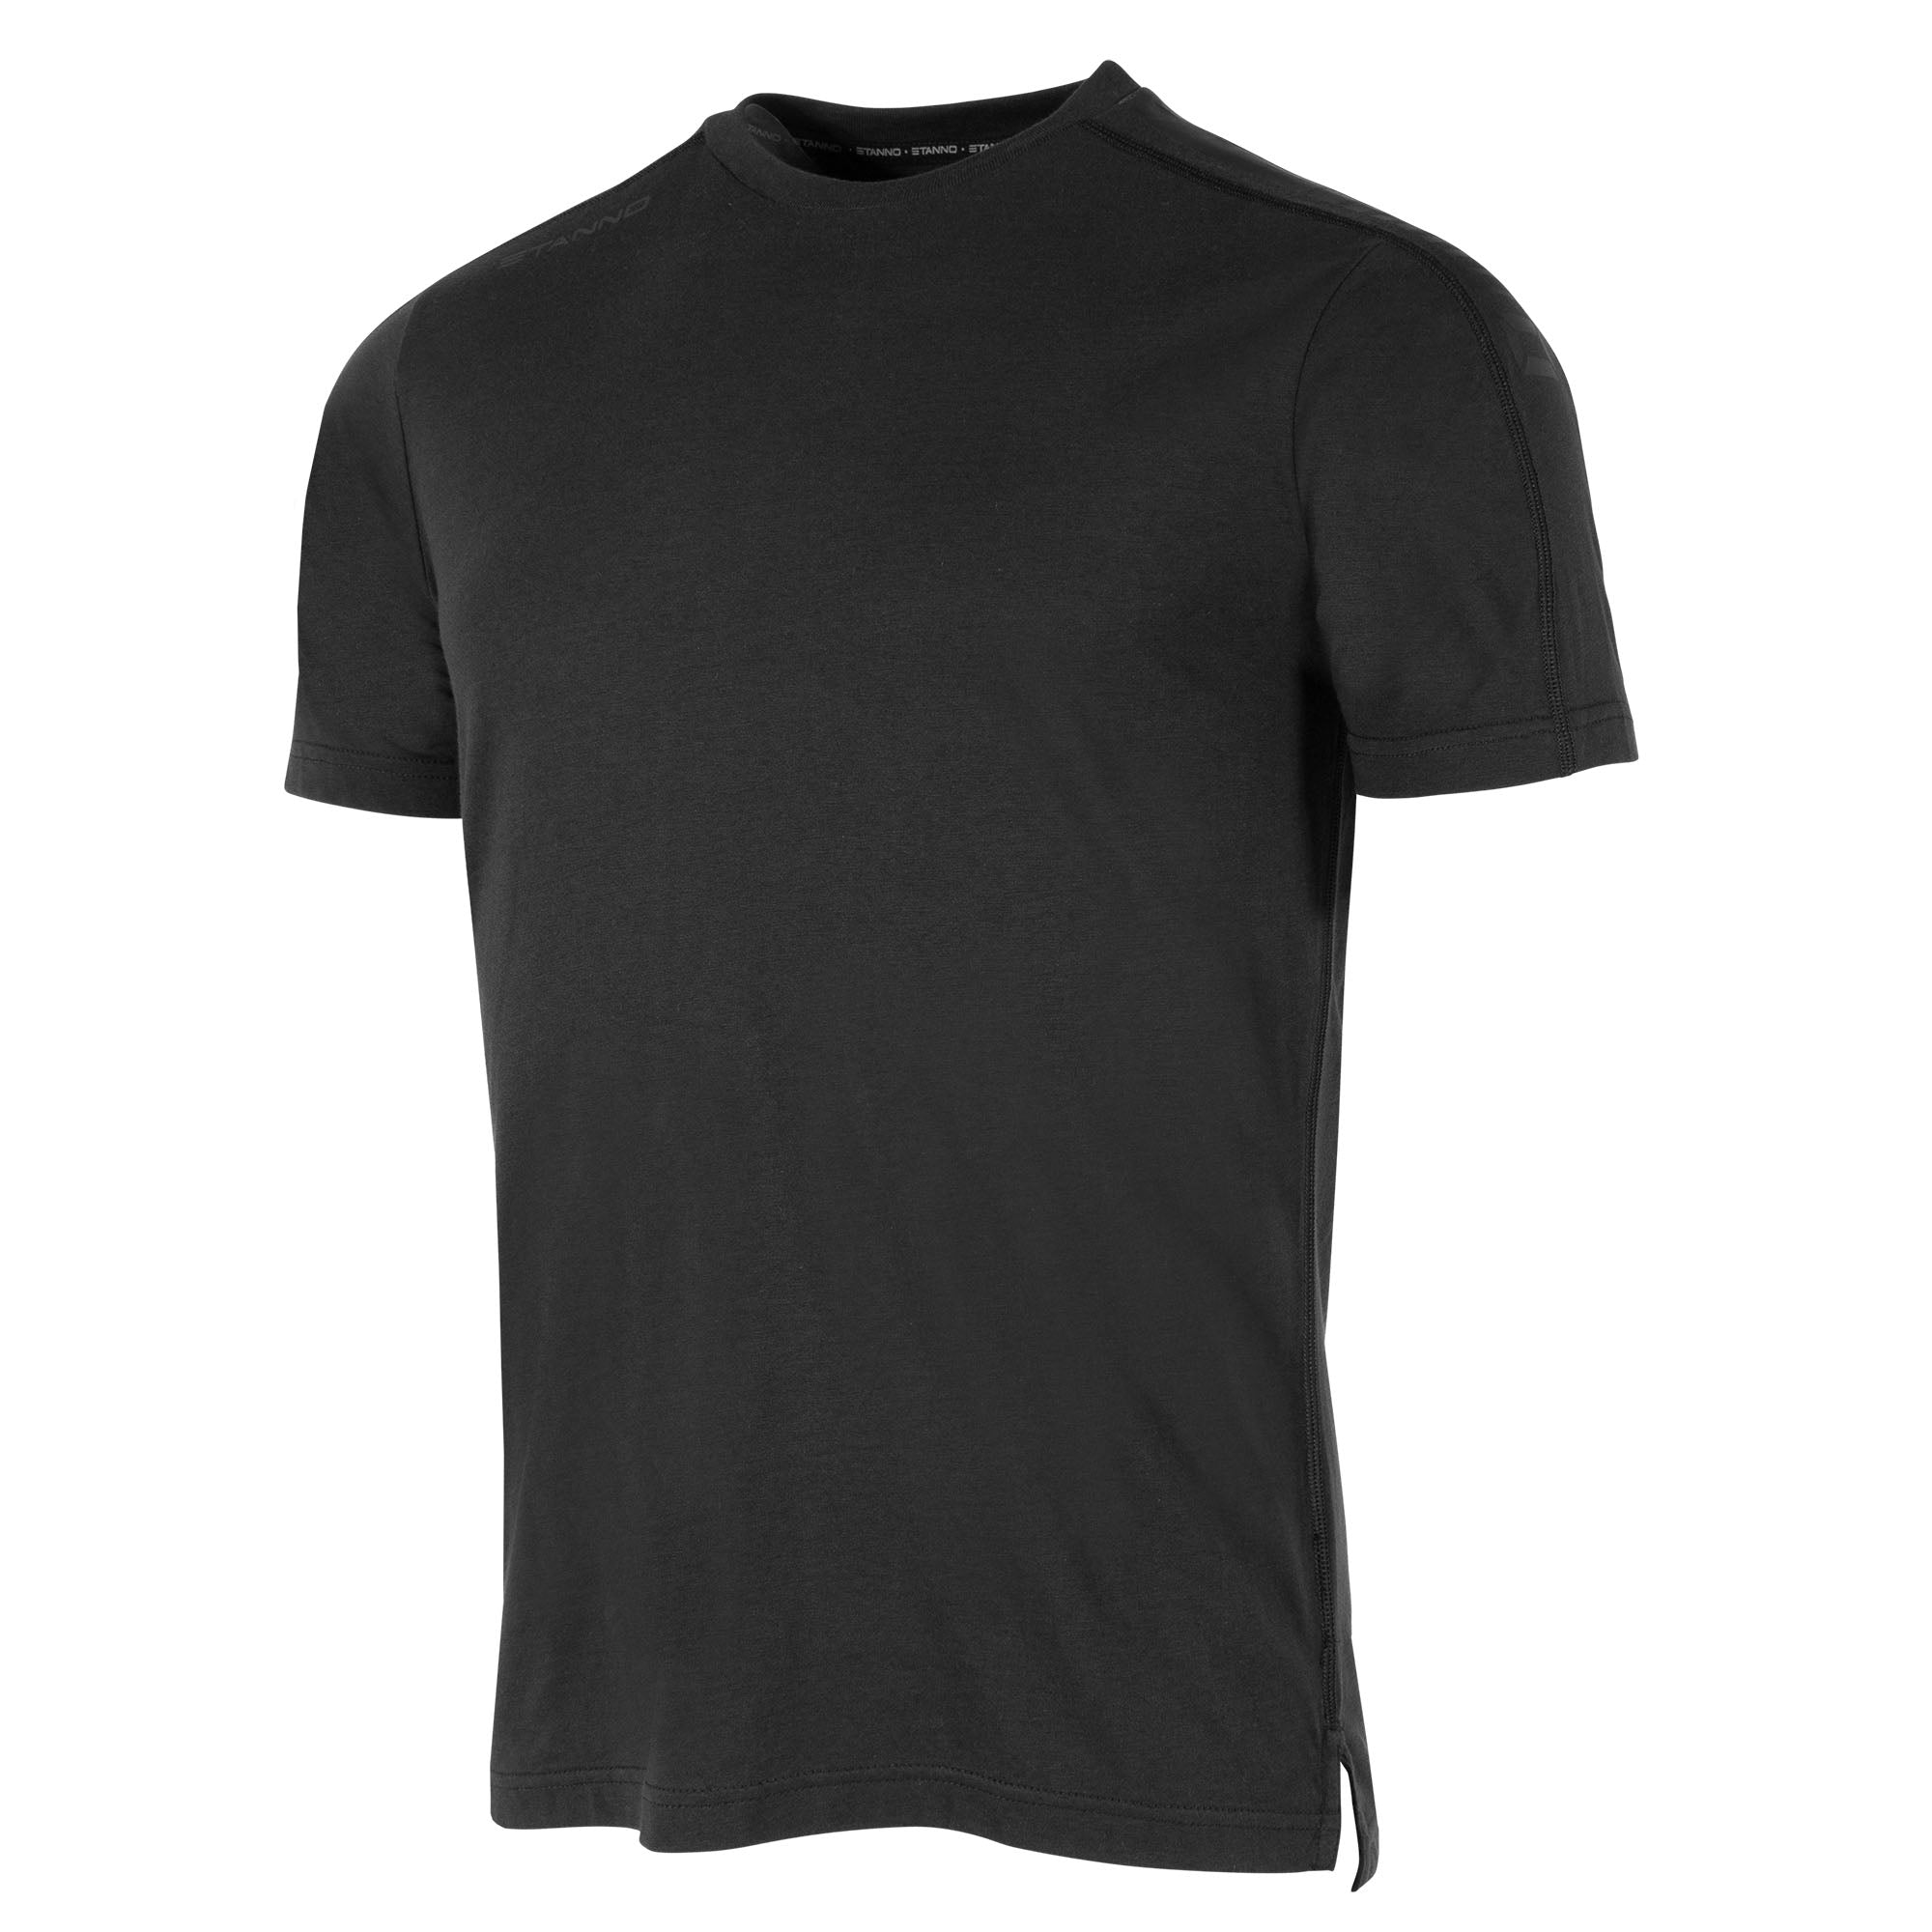 Front view of black Stanno Ease T-Shirt with round neck, side slit design, and subtle shoulder print.